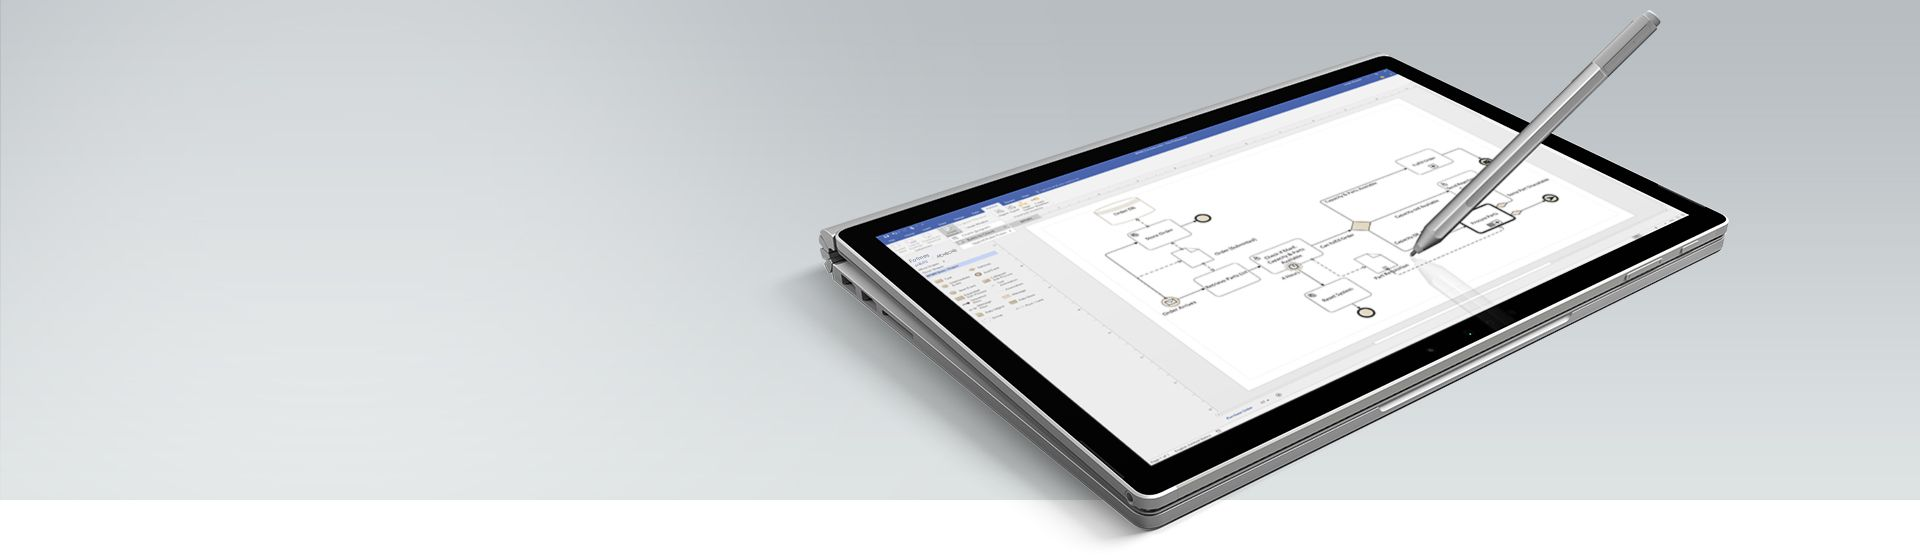 Tablette Surface affichant un diagramme de processus dans Visio